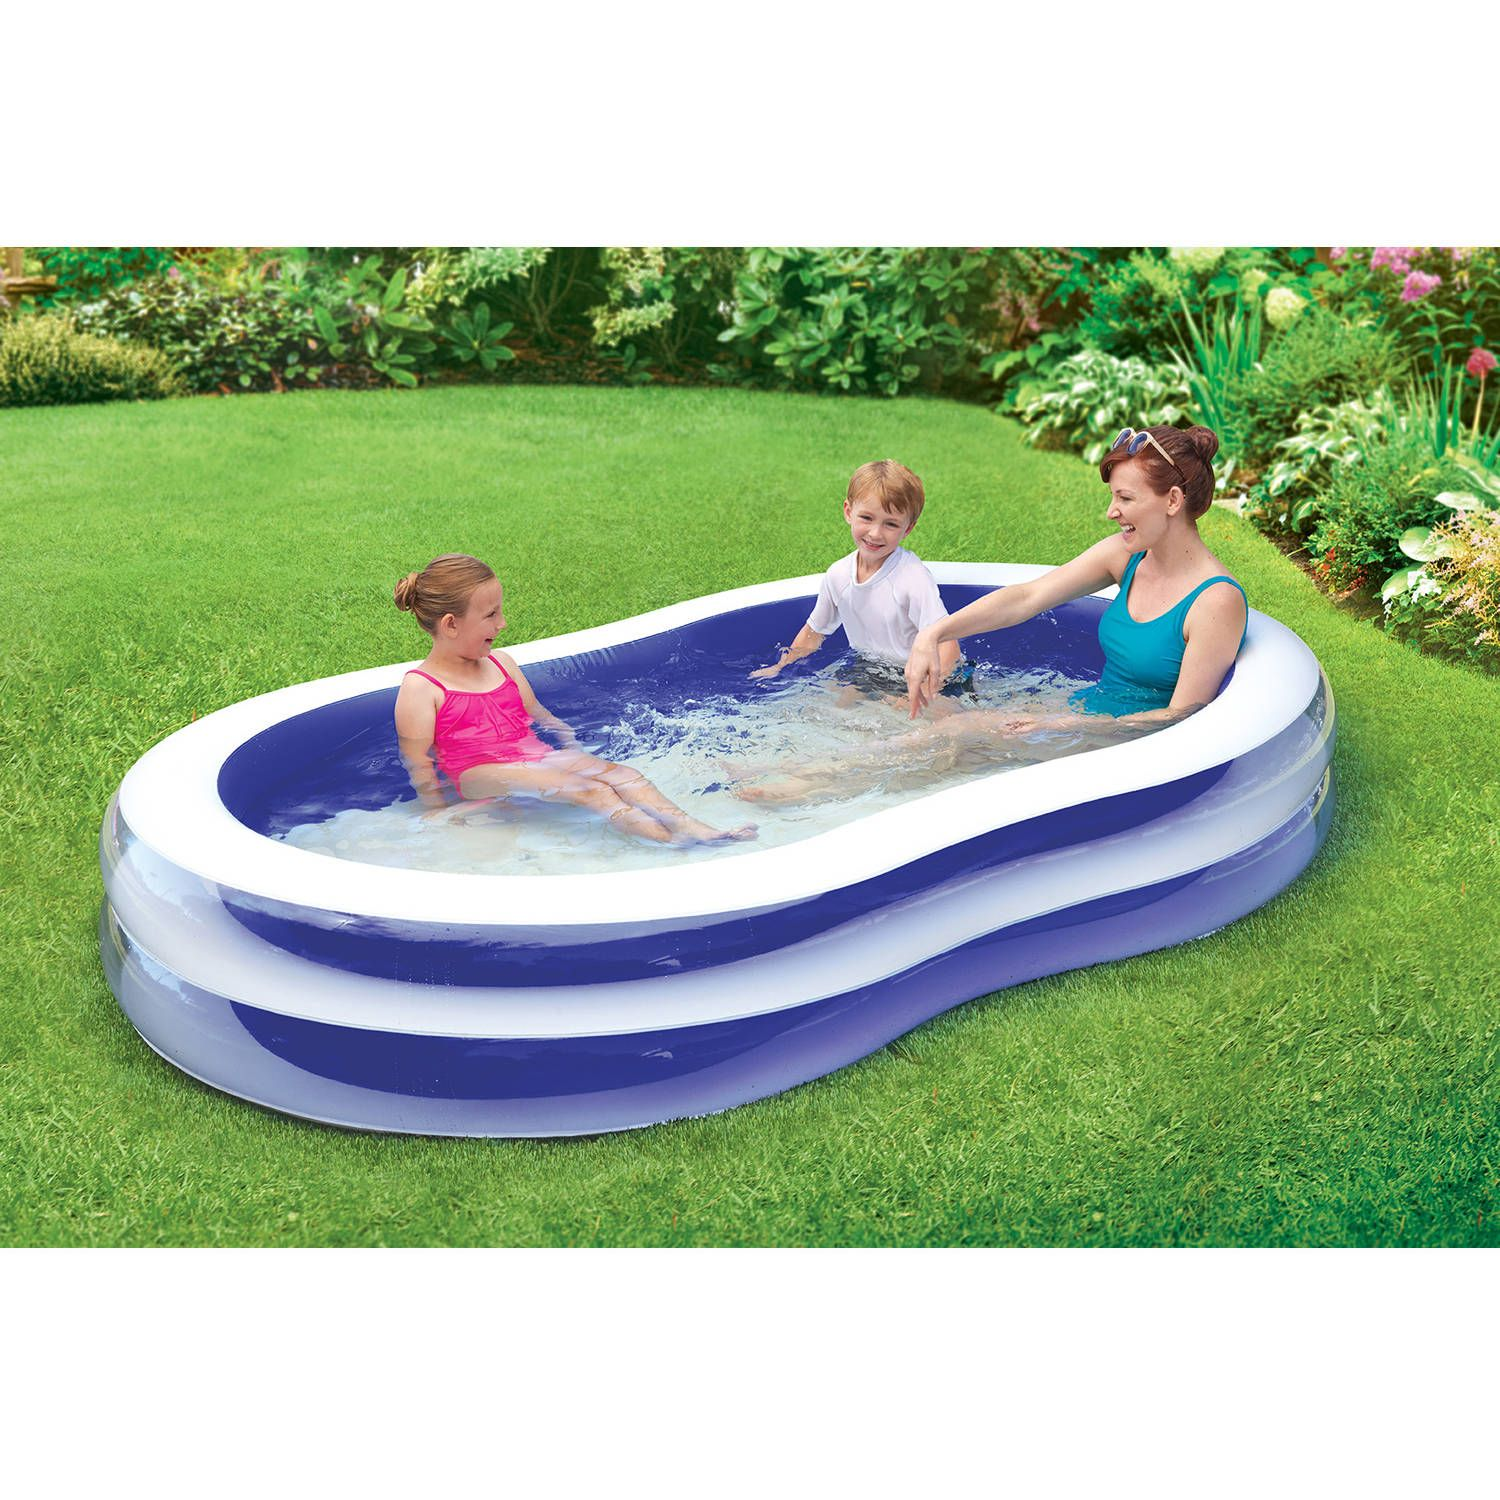 Intex Rectangular Pool Cover For 103 120 Inch Pools By Intex 8 95 For Use With 120in X 72in Or 103in X Pool Cover Rectangular Pool Children Swimming Pool